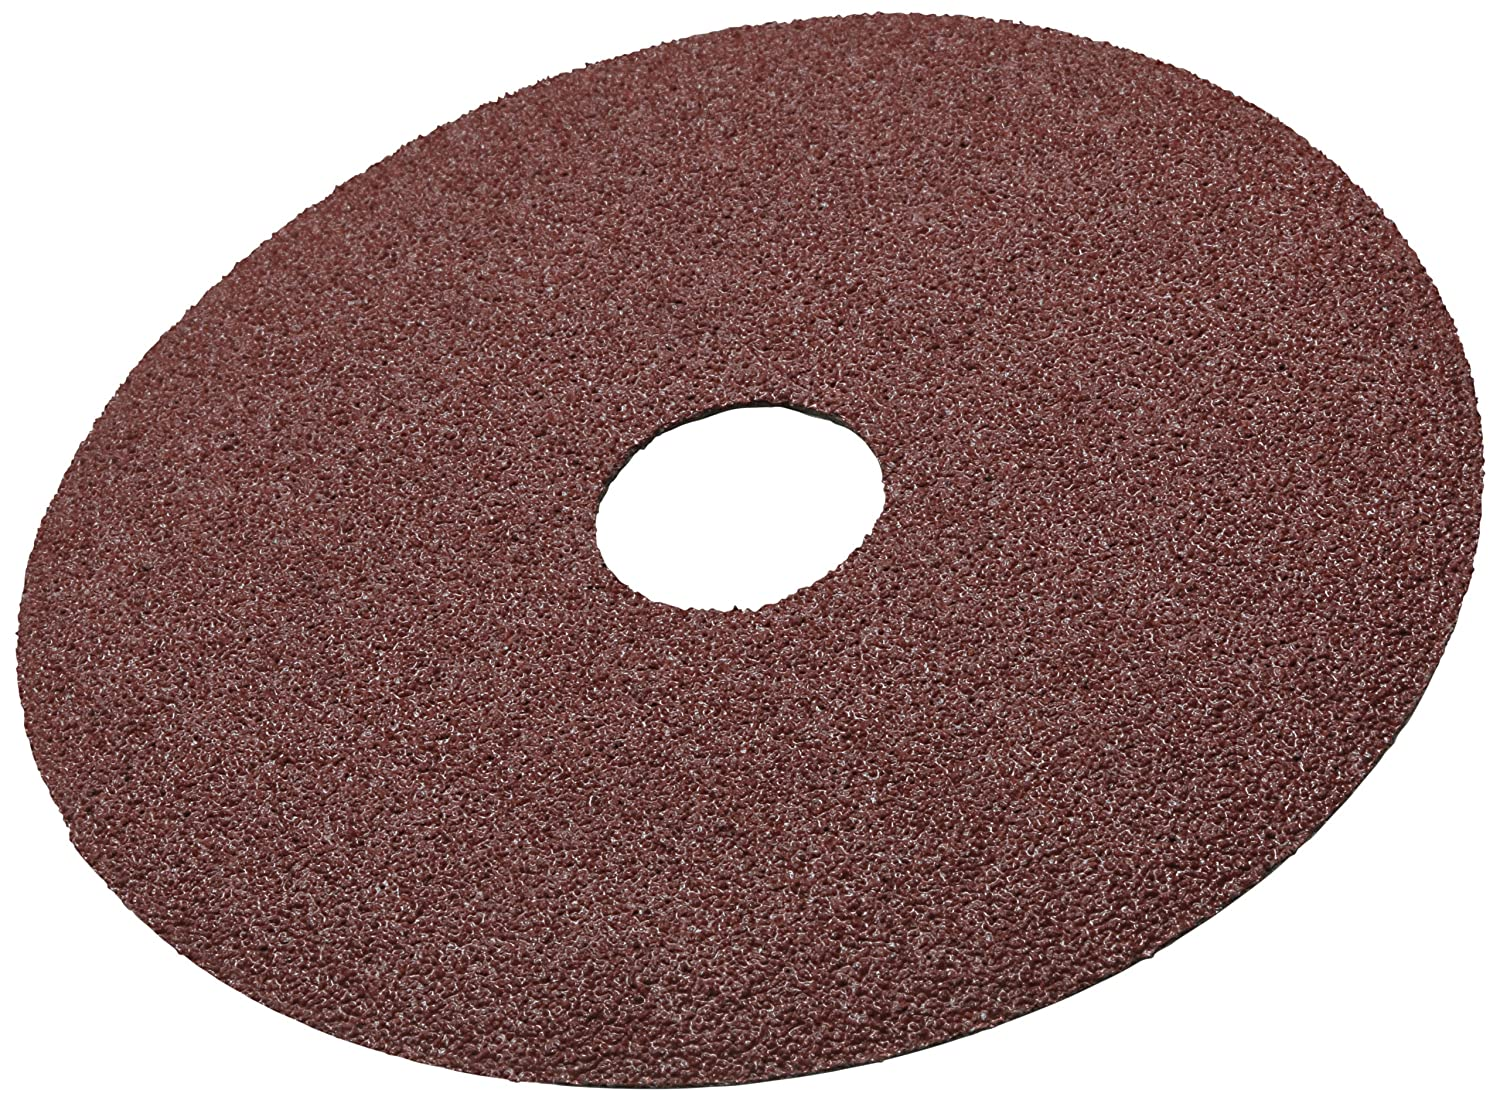 3M Fibre Disc 381C, Aluminum Oxide, 4-1/2' Diameter, 60 Grit (Pack of 25) 4-1/2 Diameter